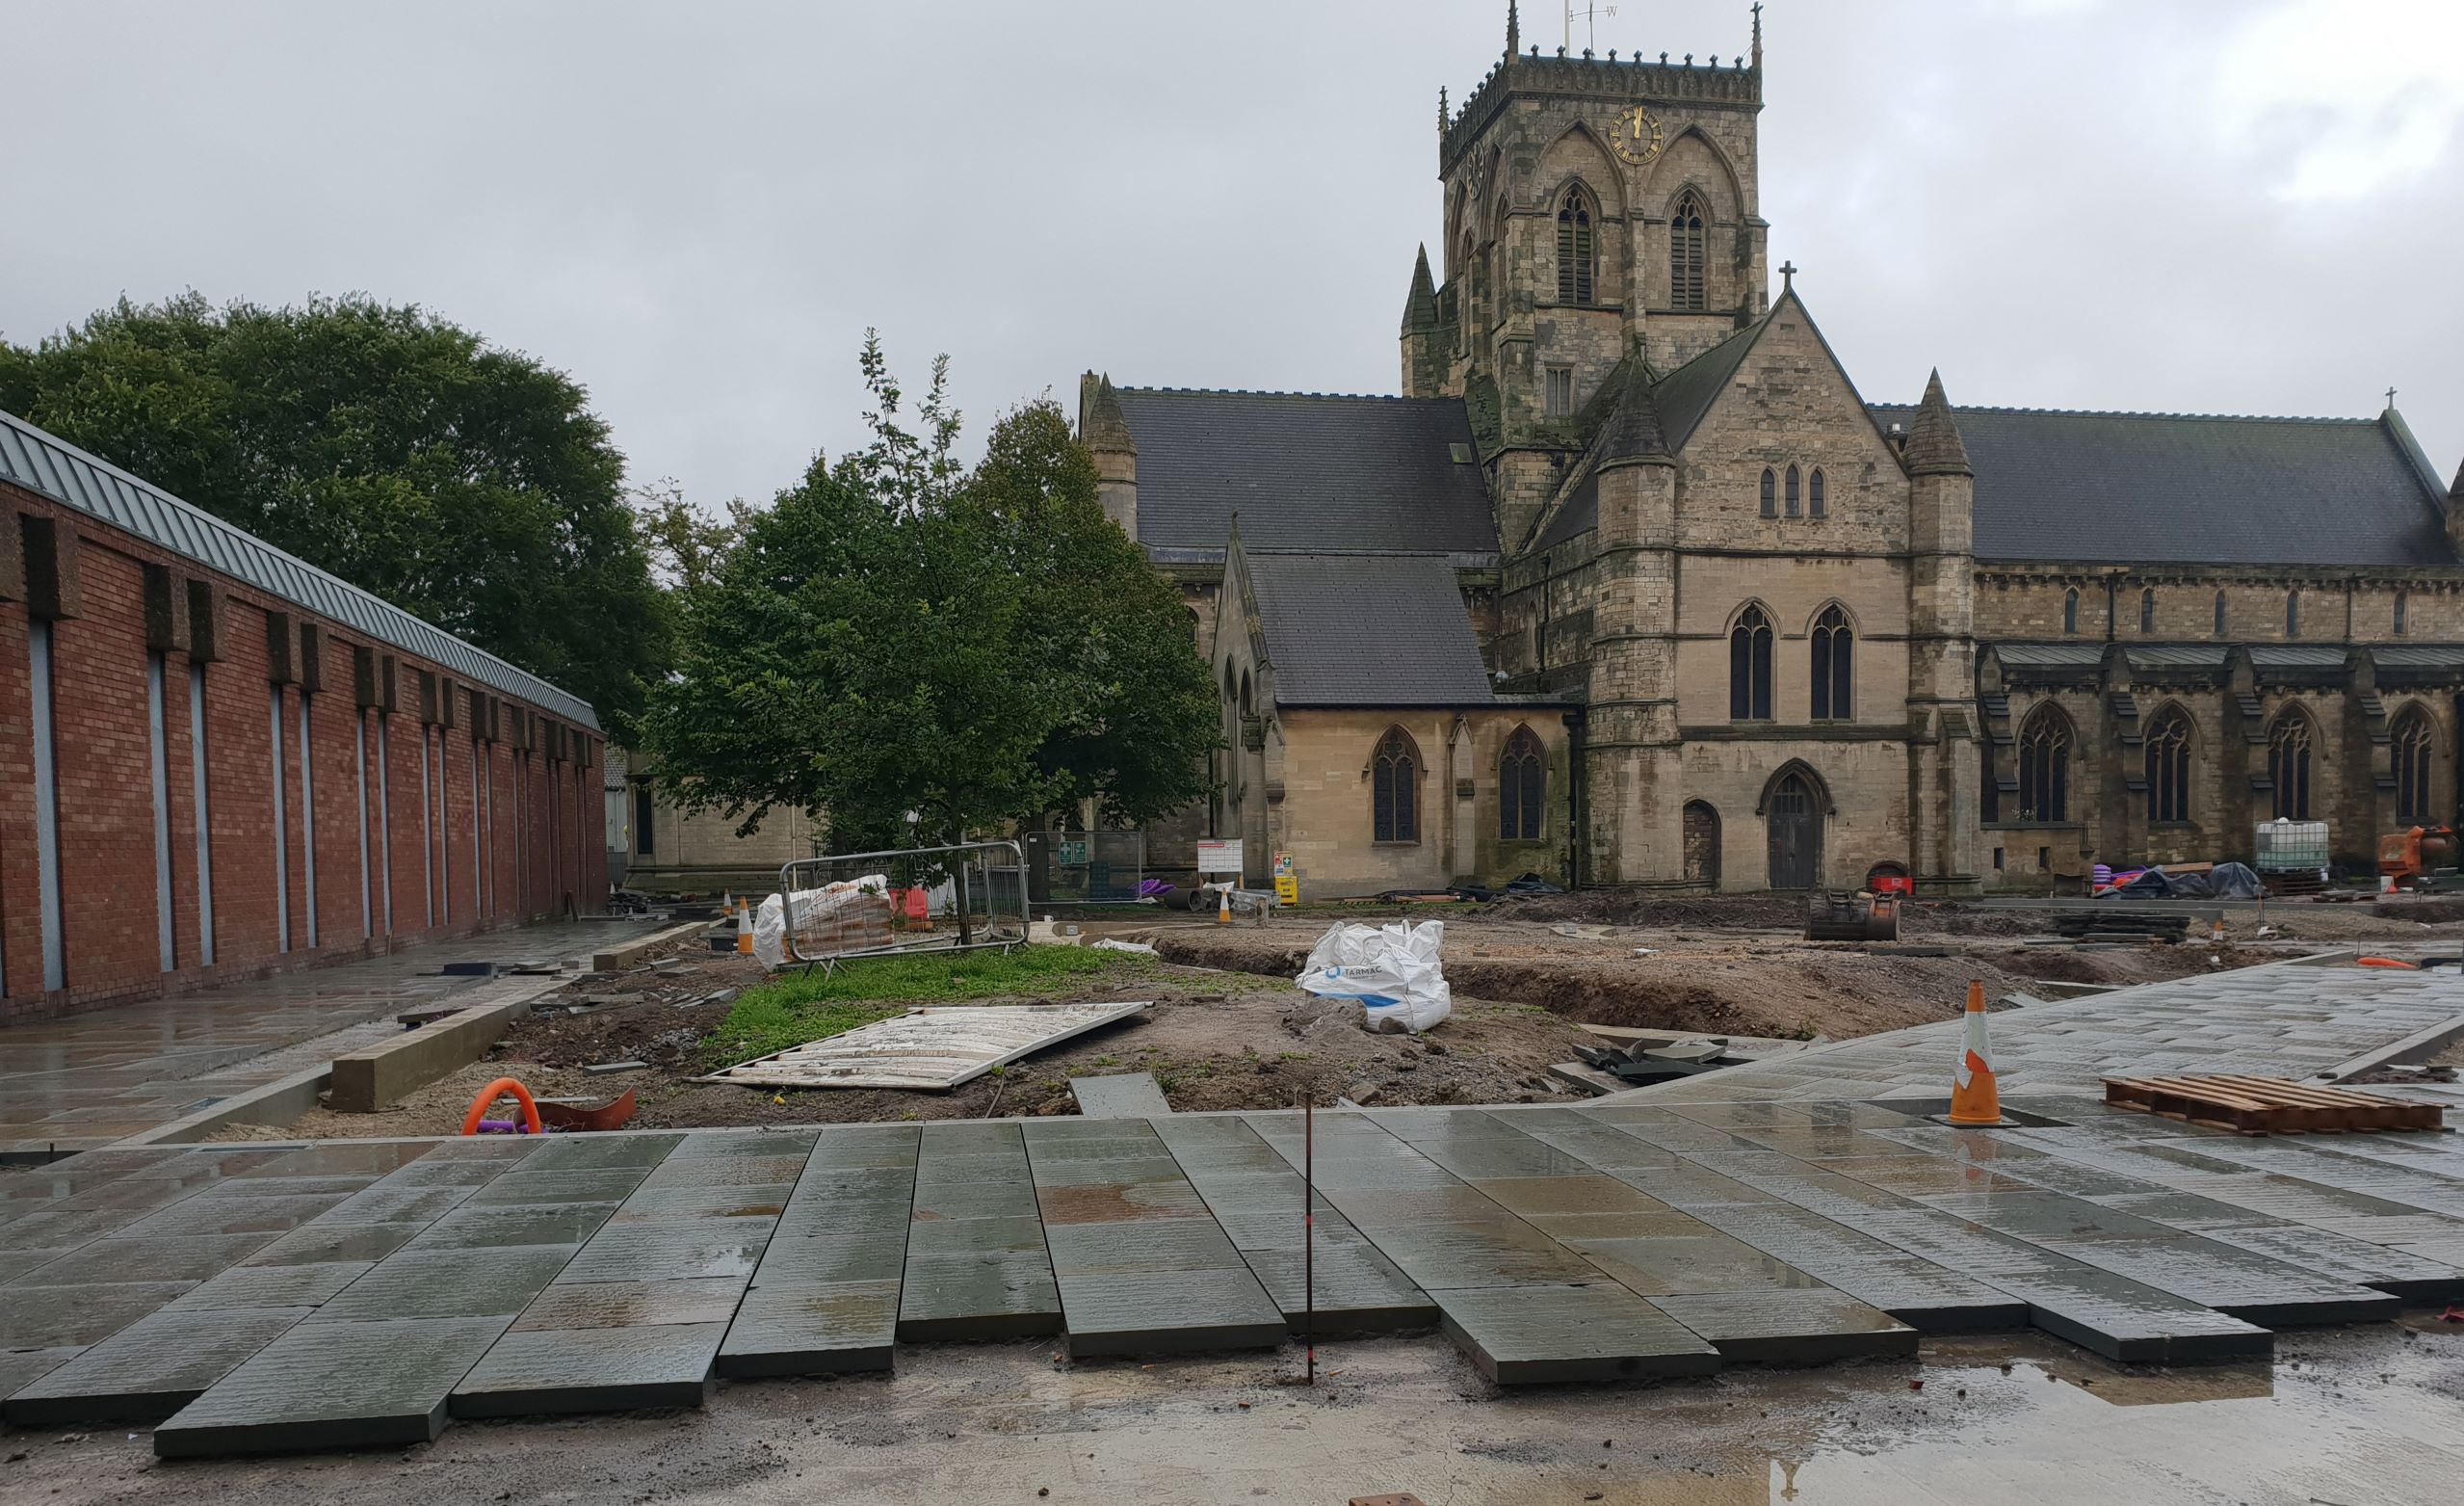 Building improvement grant for Grimsby Minster - NELC | NELC